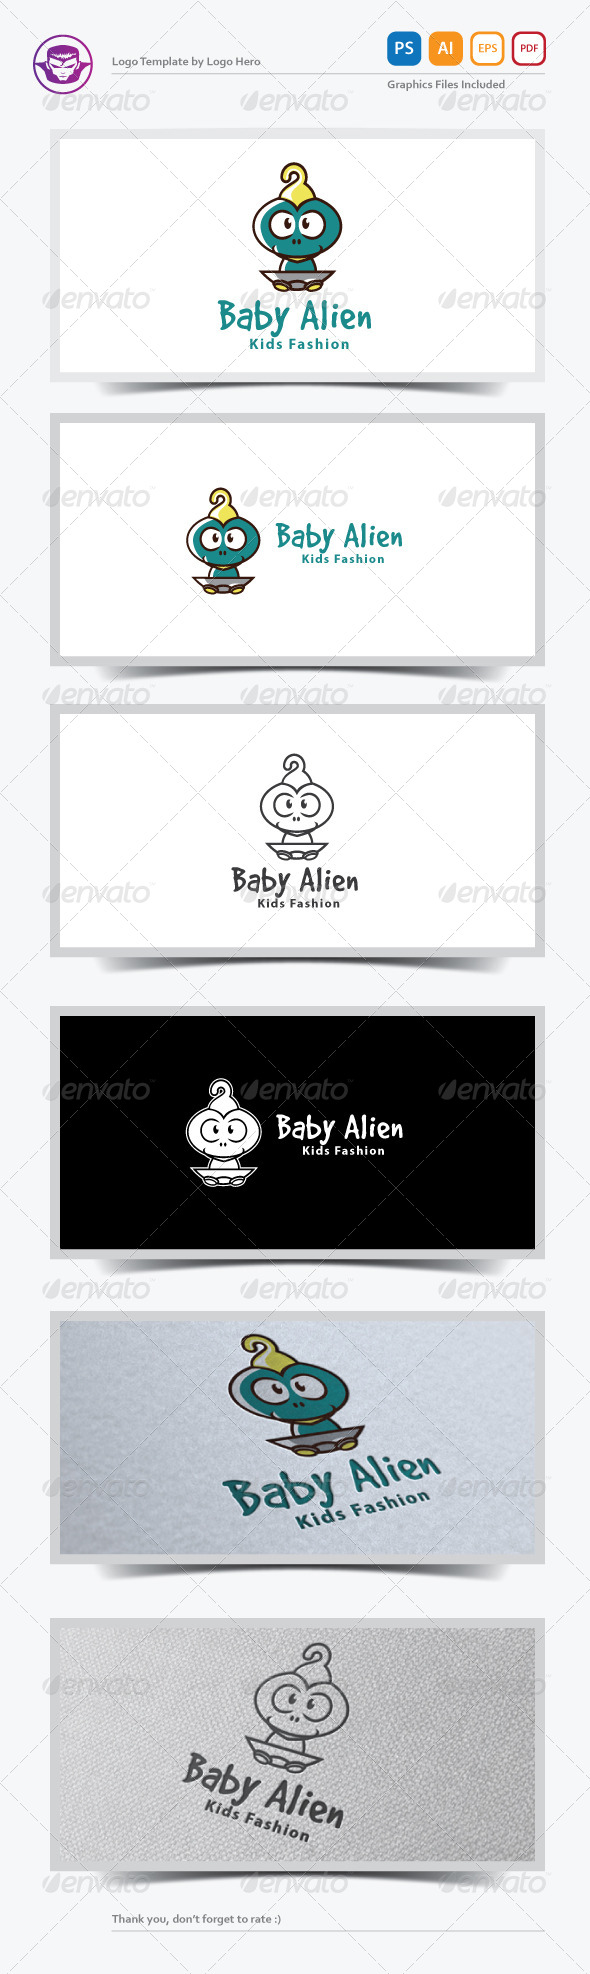 GraphicRiver Baby Alien Logo Template 7185653